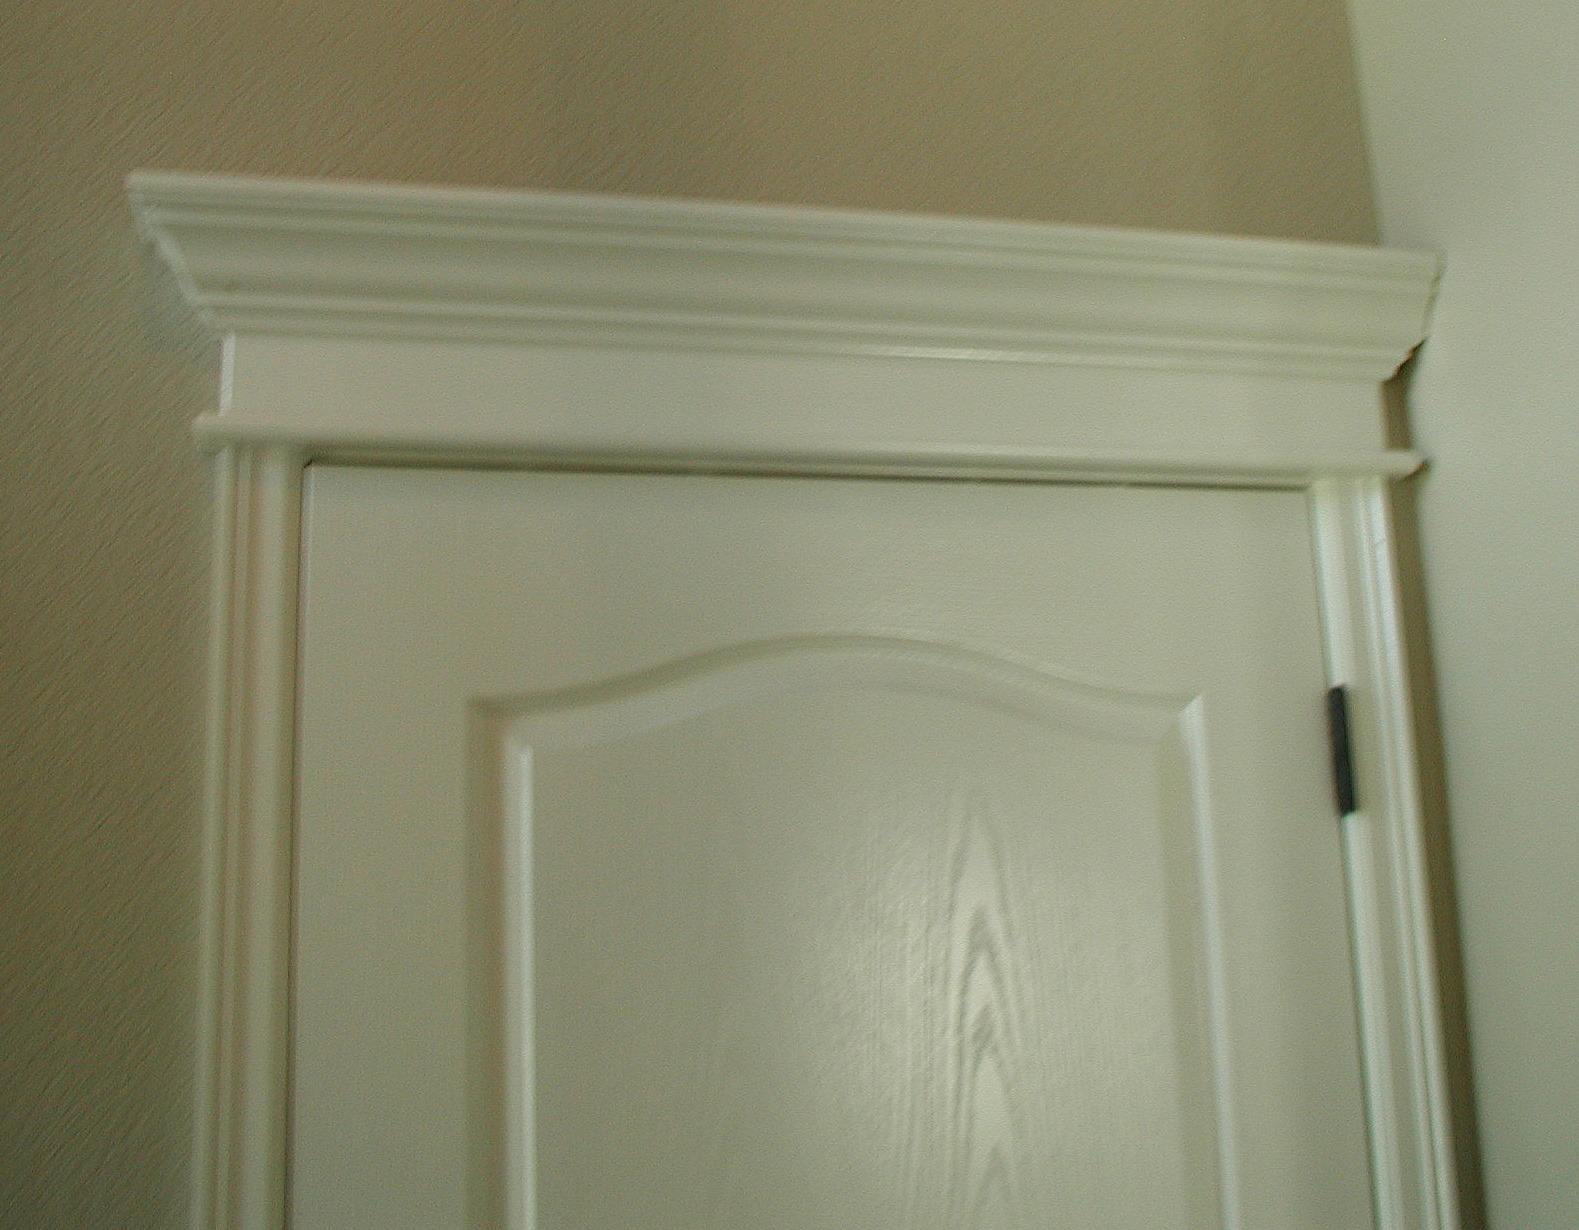 bathroom door lintel molding & Doorway and Window molding \u2013 Front Porch Cozy